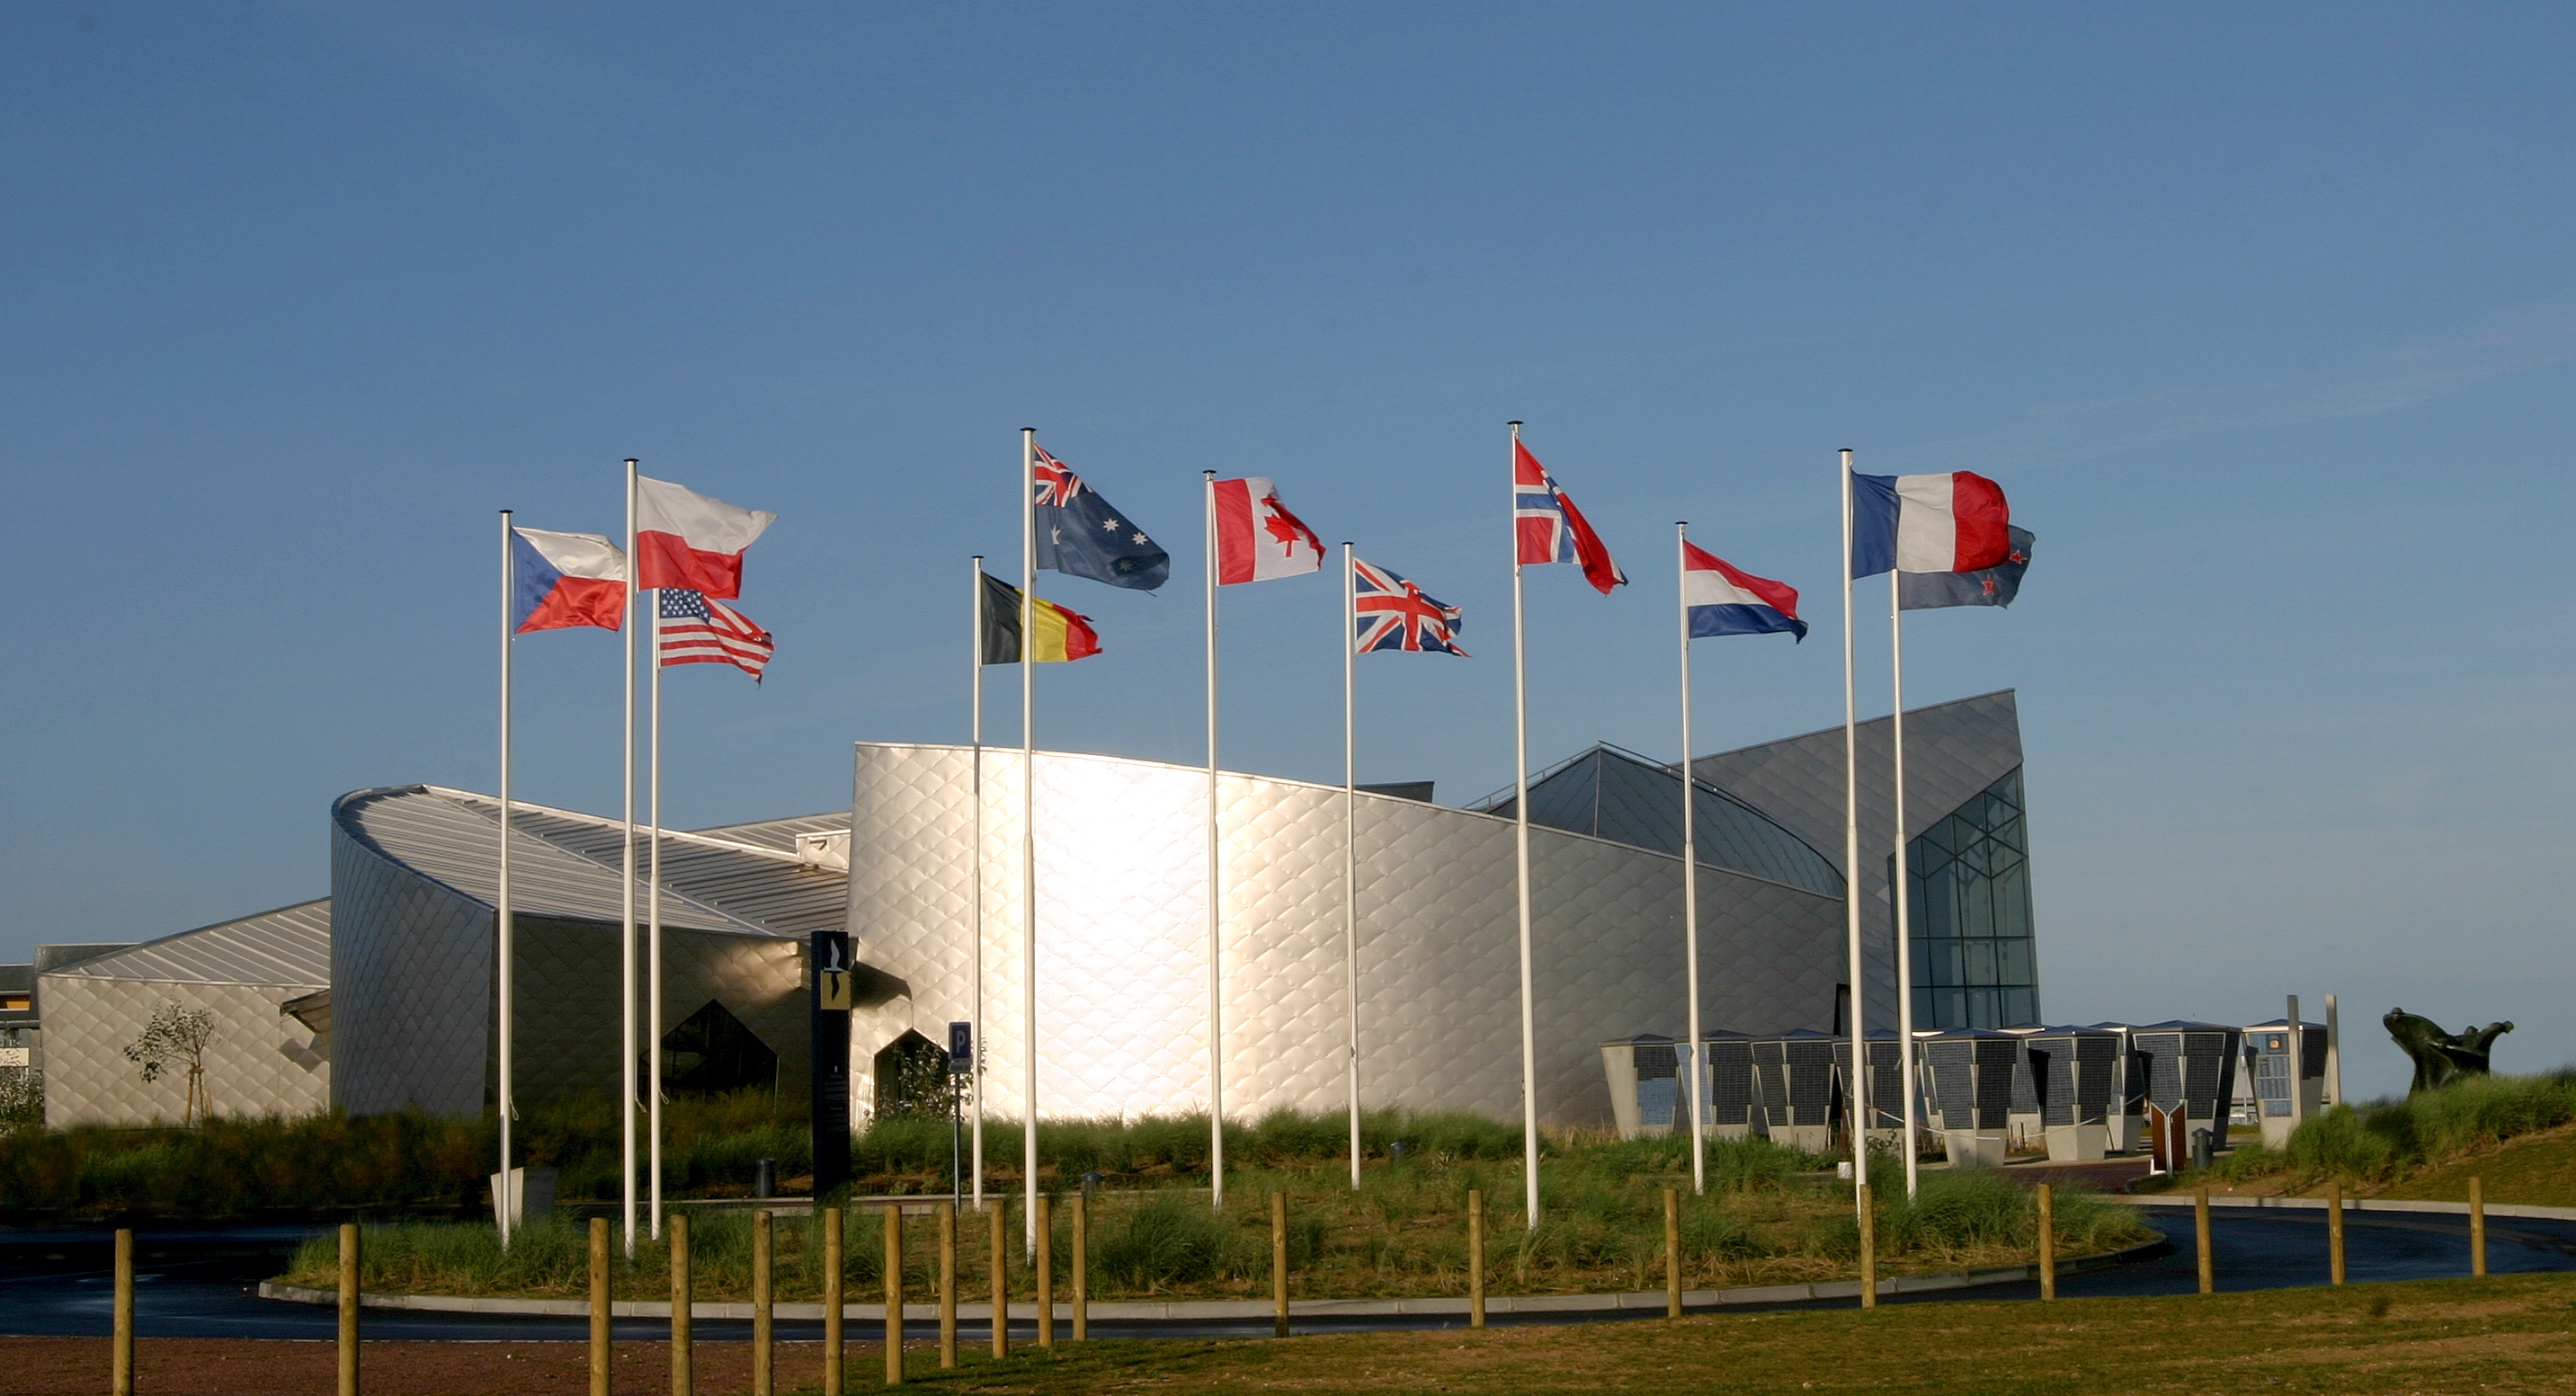 Colour photo. Juno Beach Centre viewed through 11 national flags.